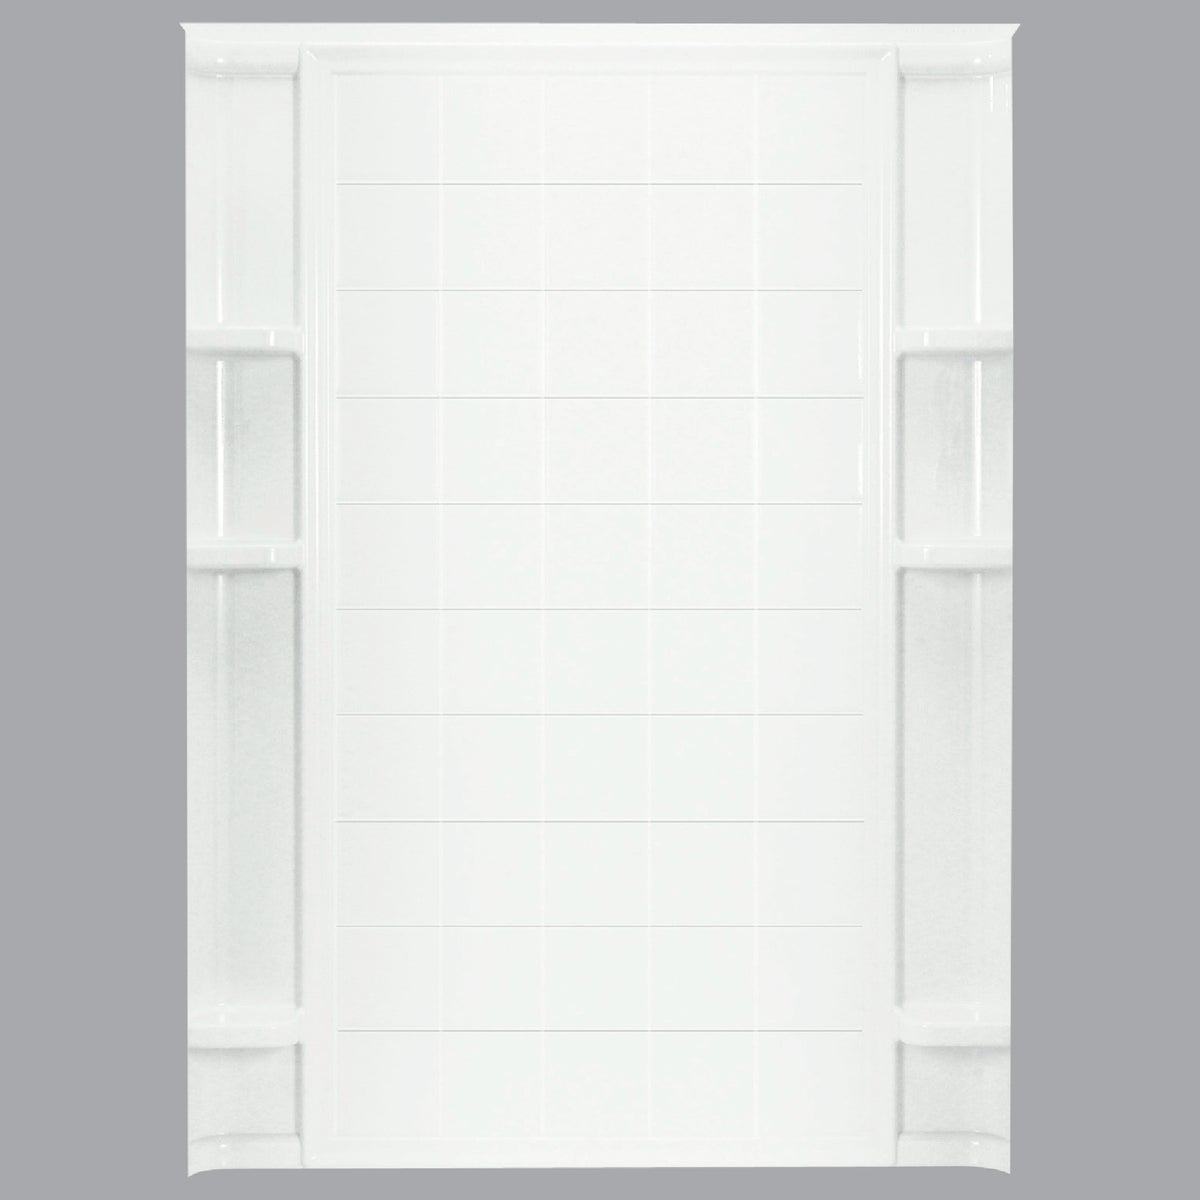 "60"" WHITE TILE BACKWALL - 72132100-0 by Sterling Pbg/vikrell"